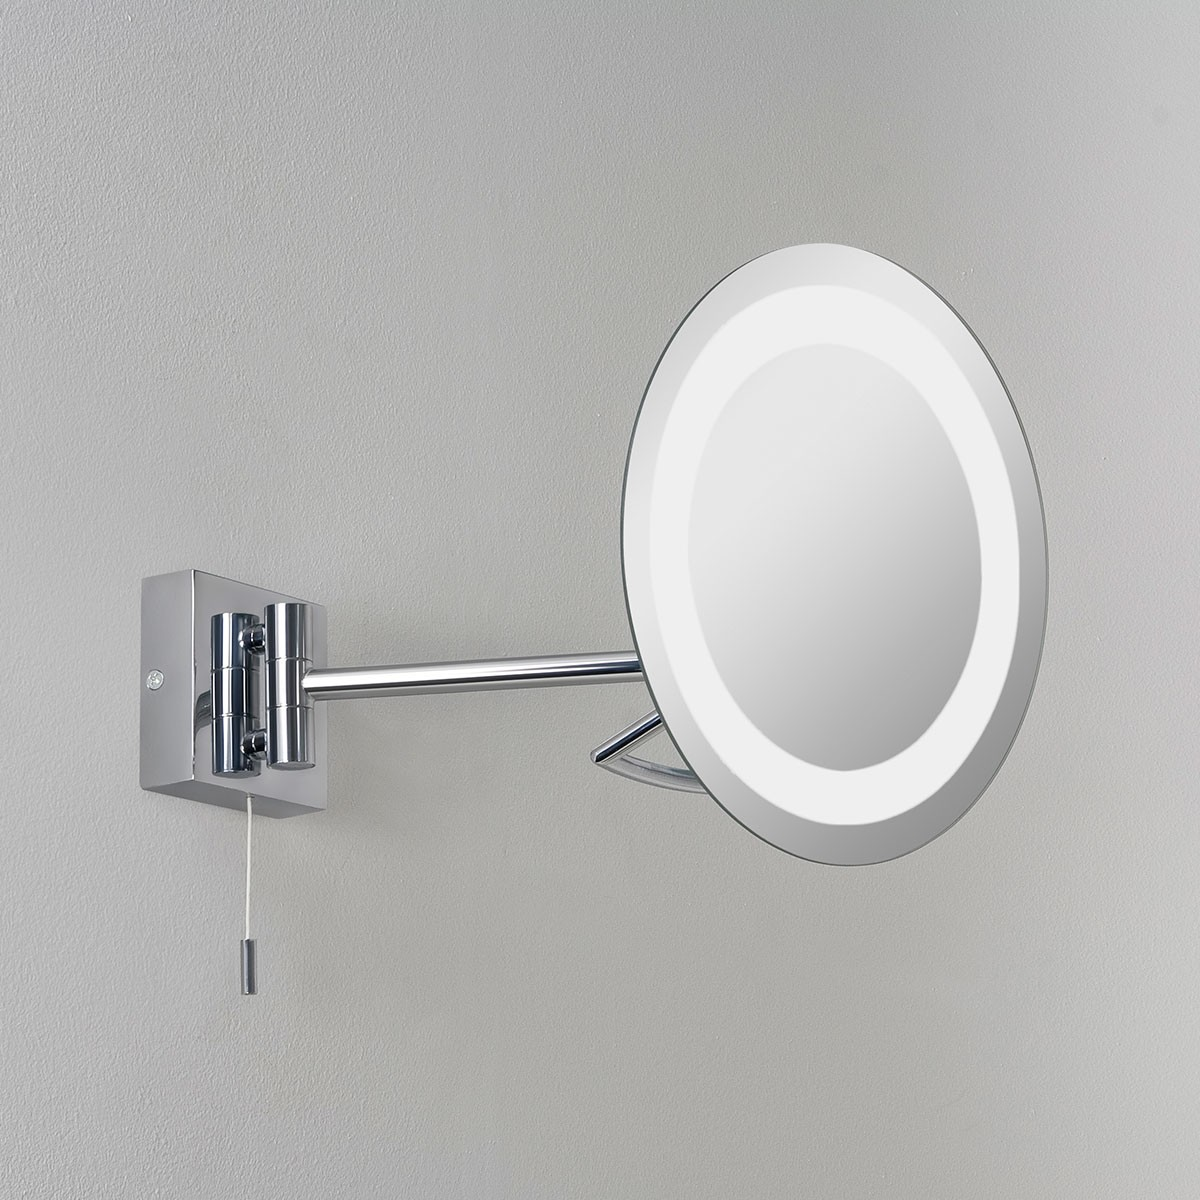 Astro gena polished chrome bathroom mirror light at uk electrical supplies Polished chrome bathroom mirrors